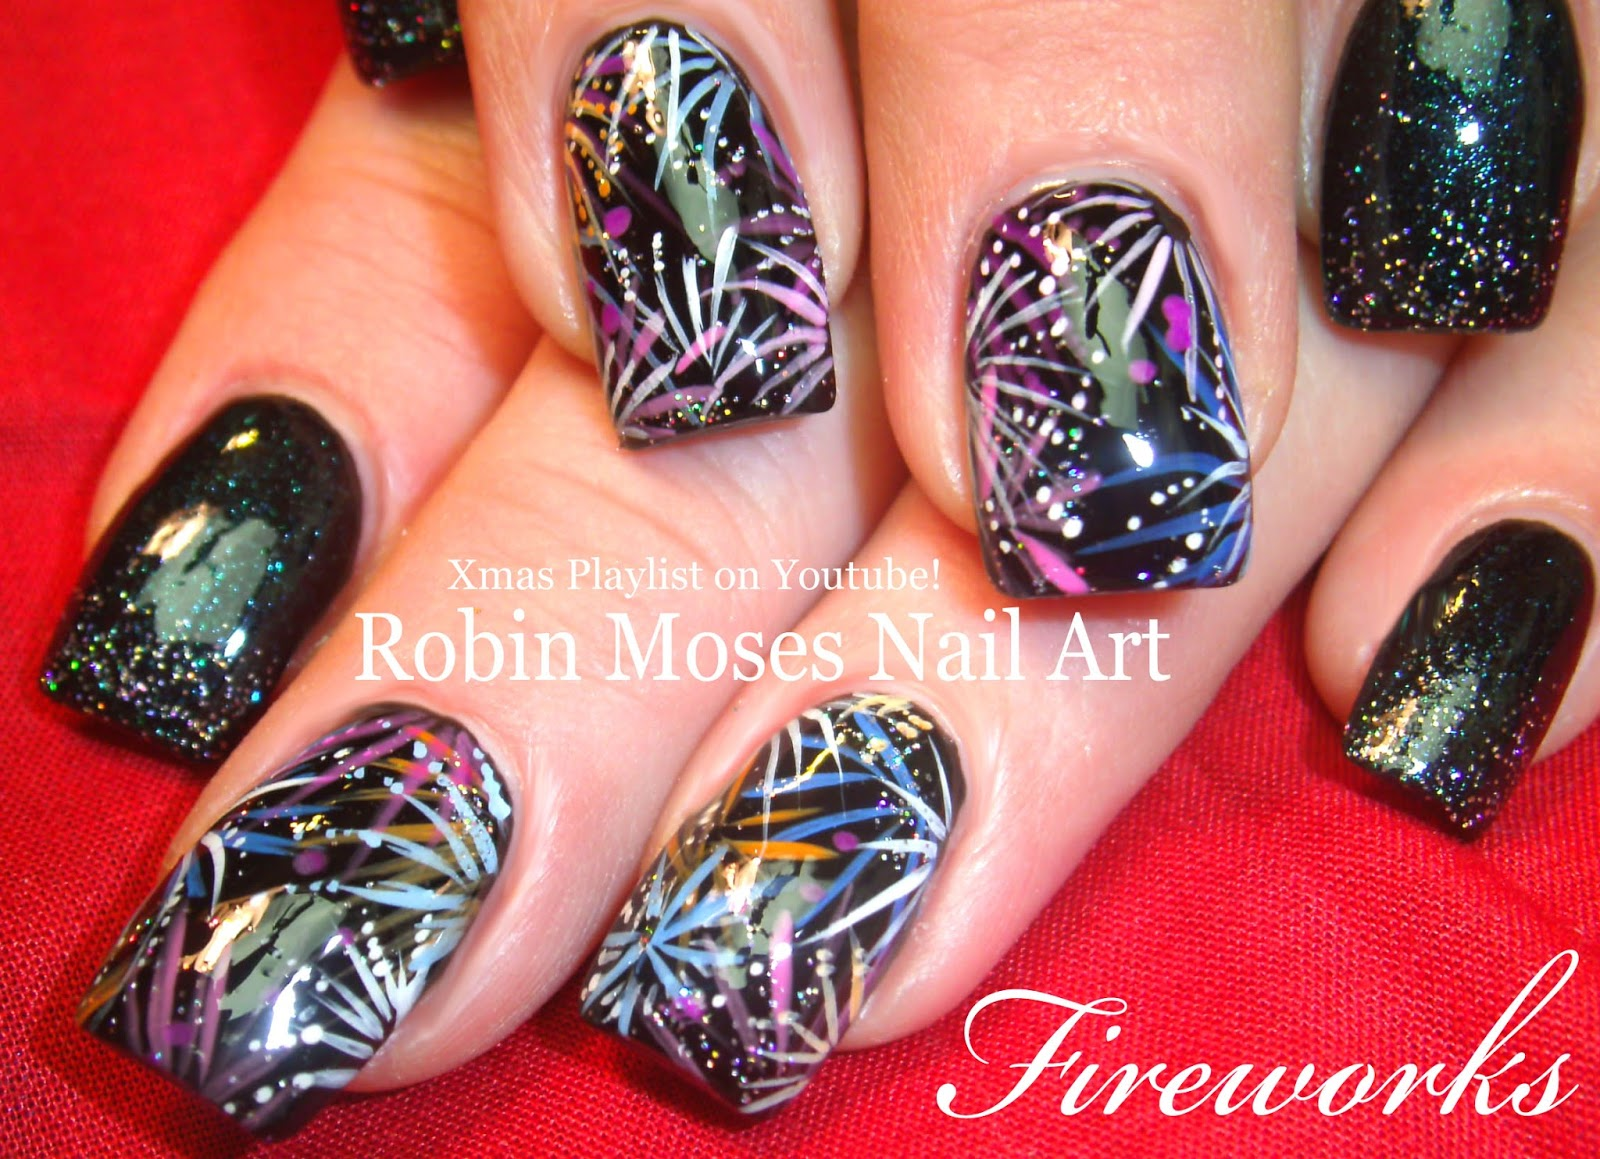 Robin moses nail art happy new year 2016 new years nails new easy nye nail art design fun firework new years nails tutorial firework nail art for new years eve fun and cute to do will look so awesome with anythng prinsesfo Images